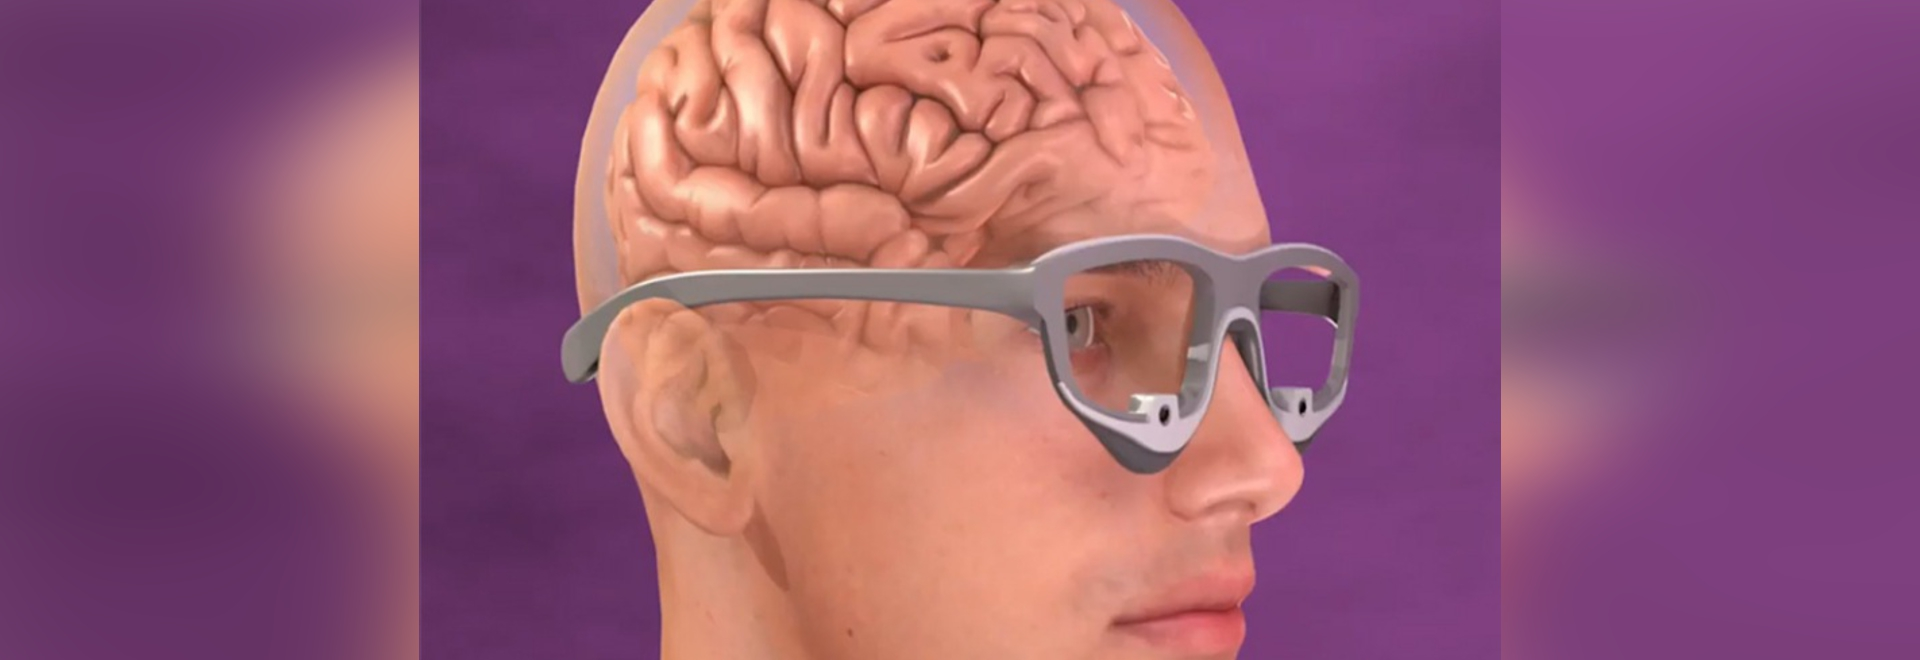 Optogenetic Brain System to Give Blind People Sight